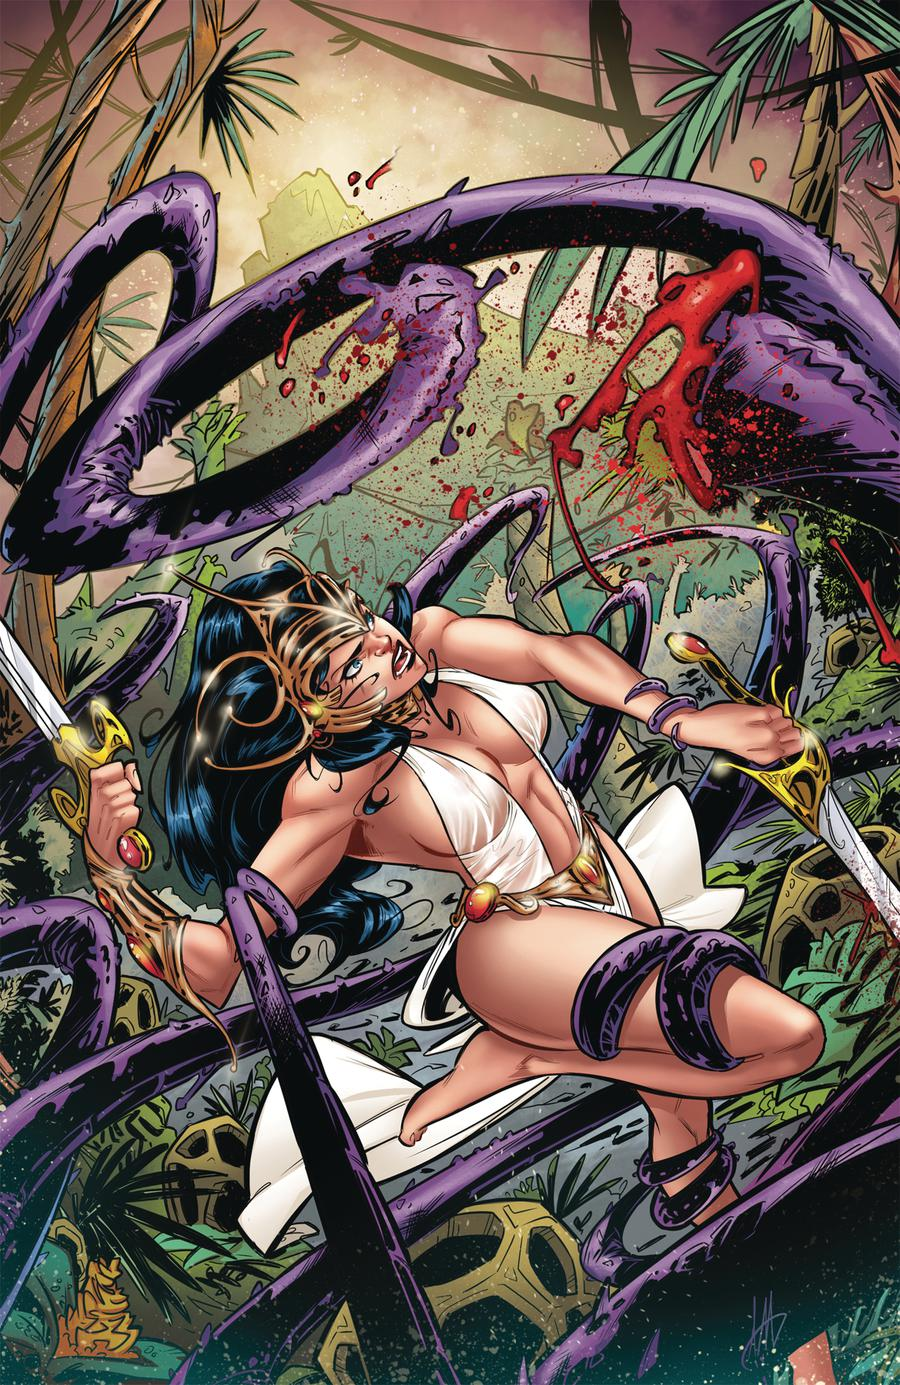 Moon Maid Catacombs Of The Moon #2 Cover C Limited Edition Alex Miracolo Virgin Cover